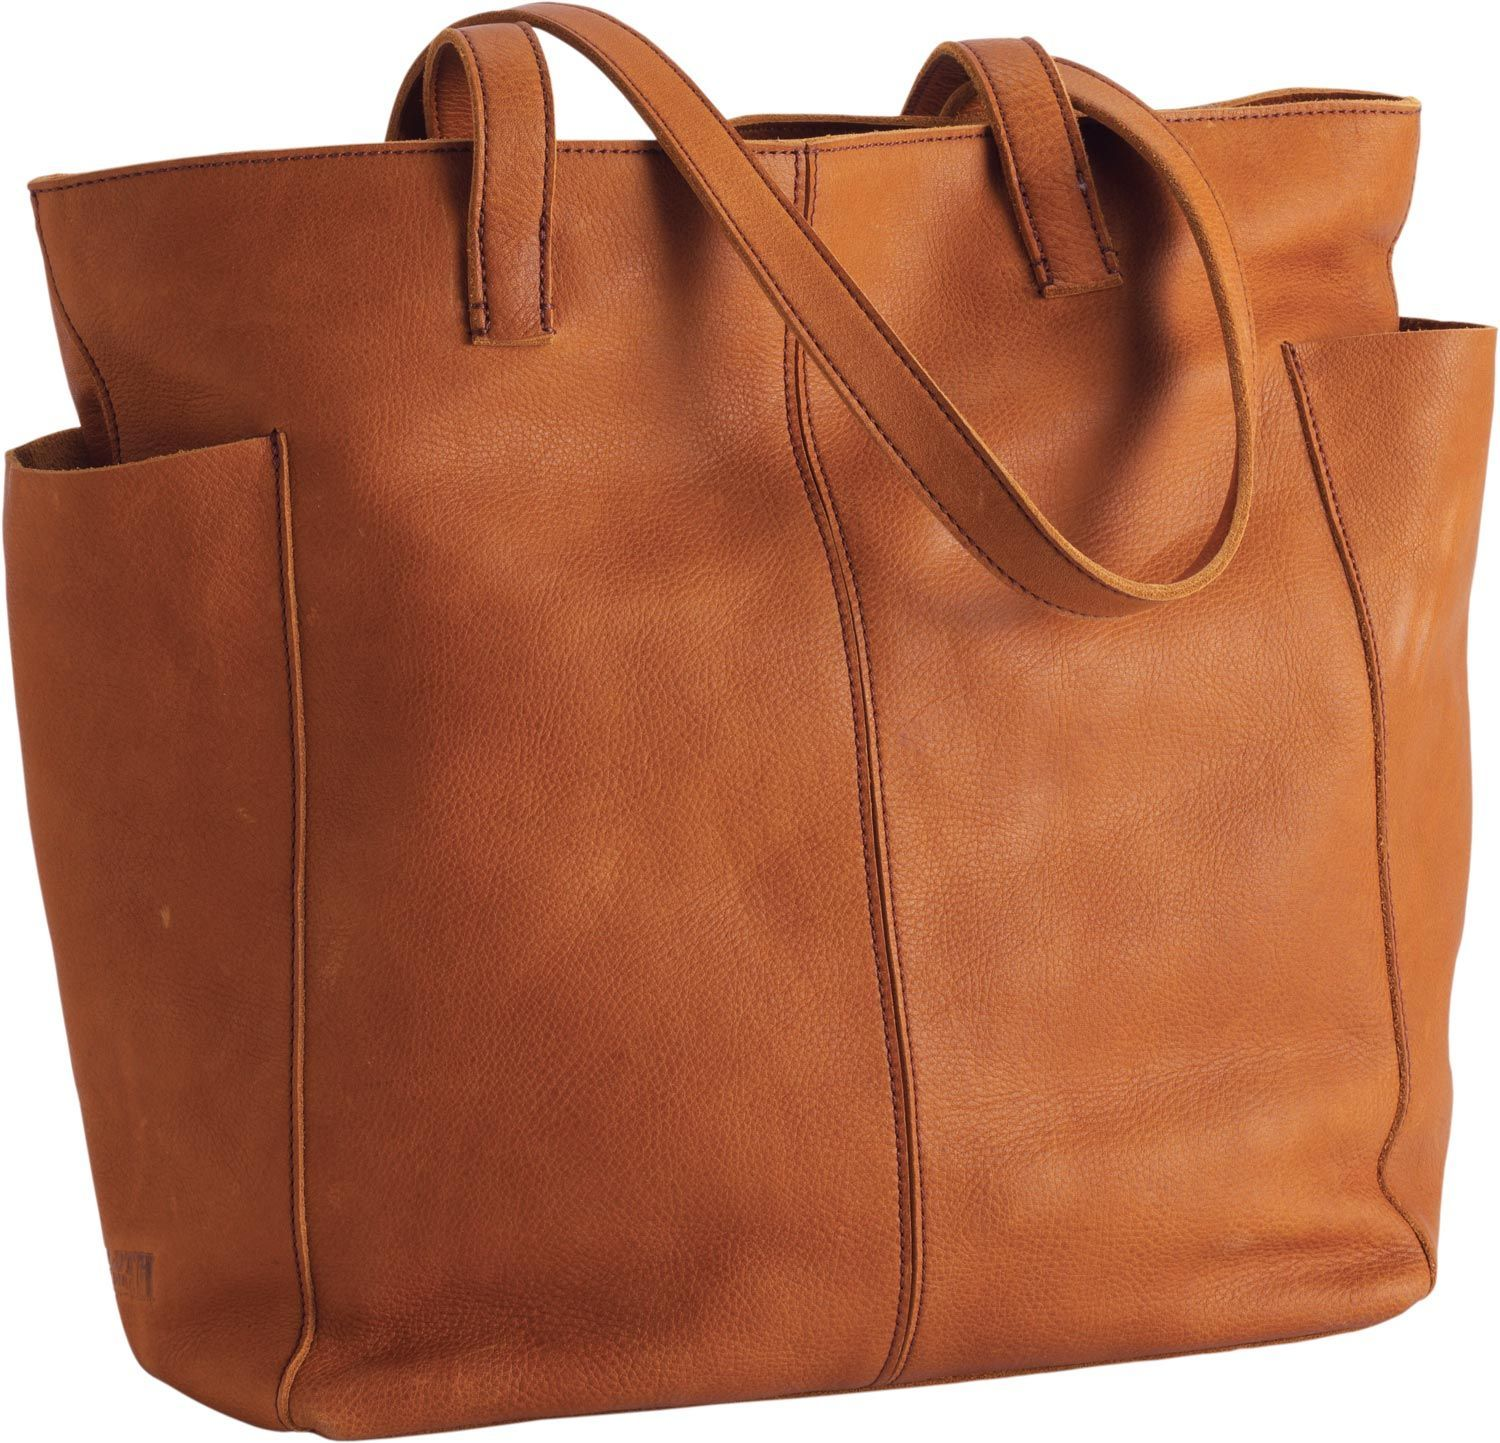 Women S Lifetime Leather Tote Bag In 2019 Personal Style